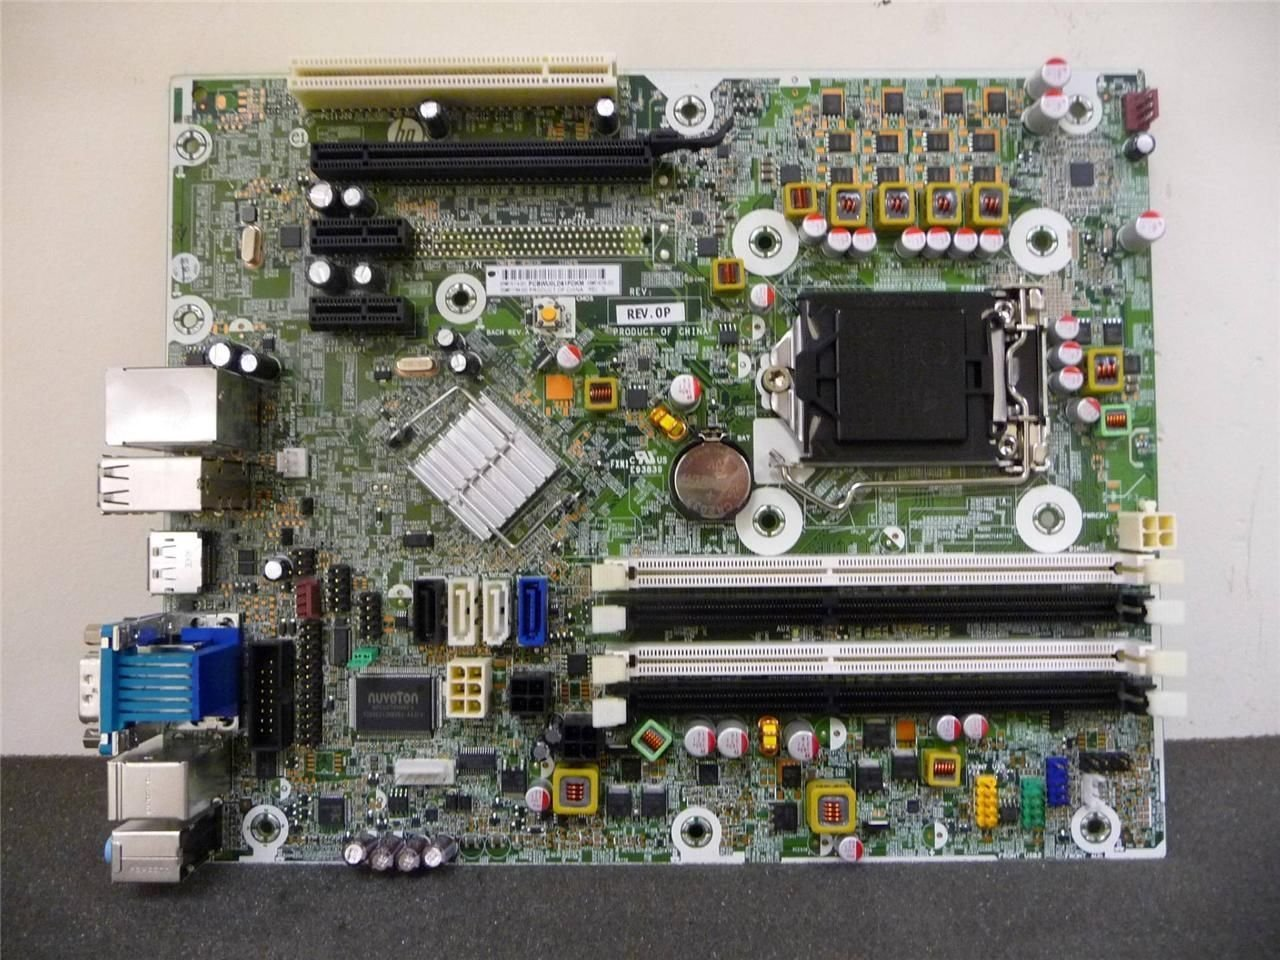 HP 615114-001 System board (motherboard) assembly - Includes Trusted Platform Module (TPM) - For Worldwide